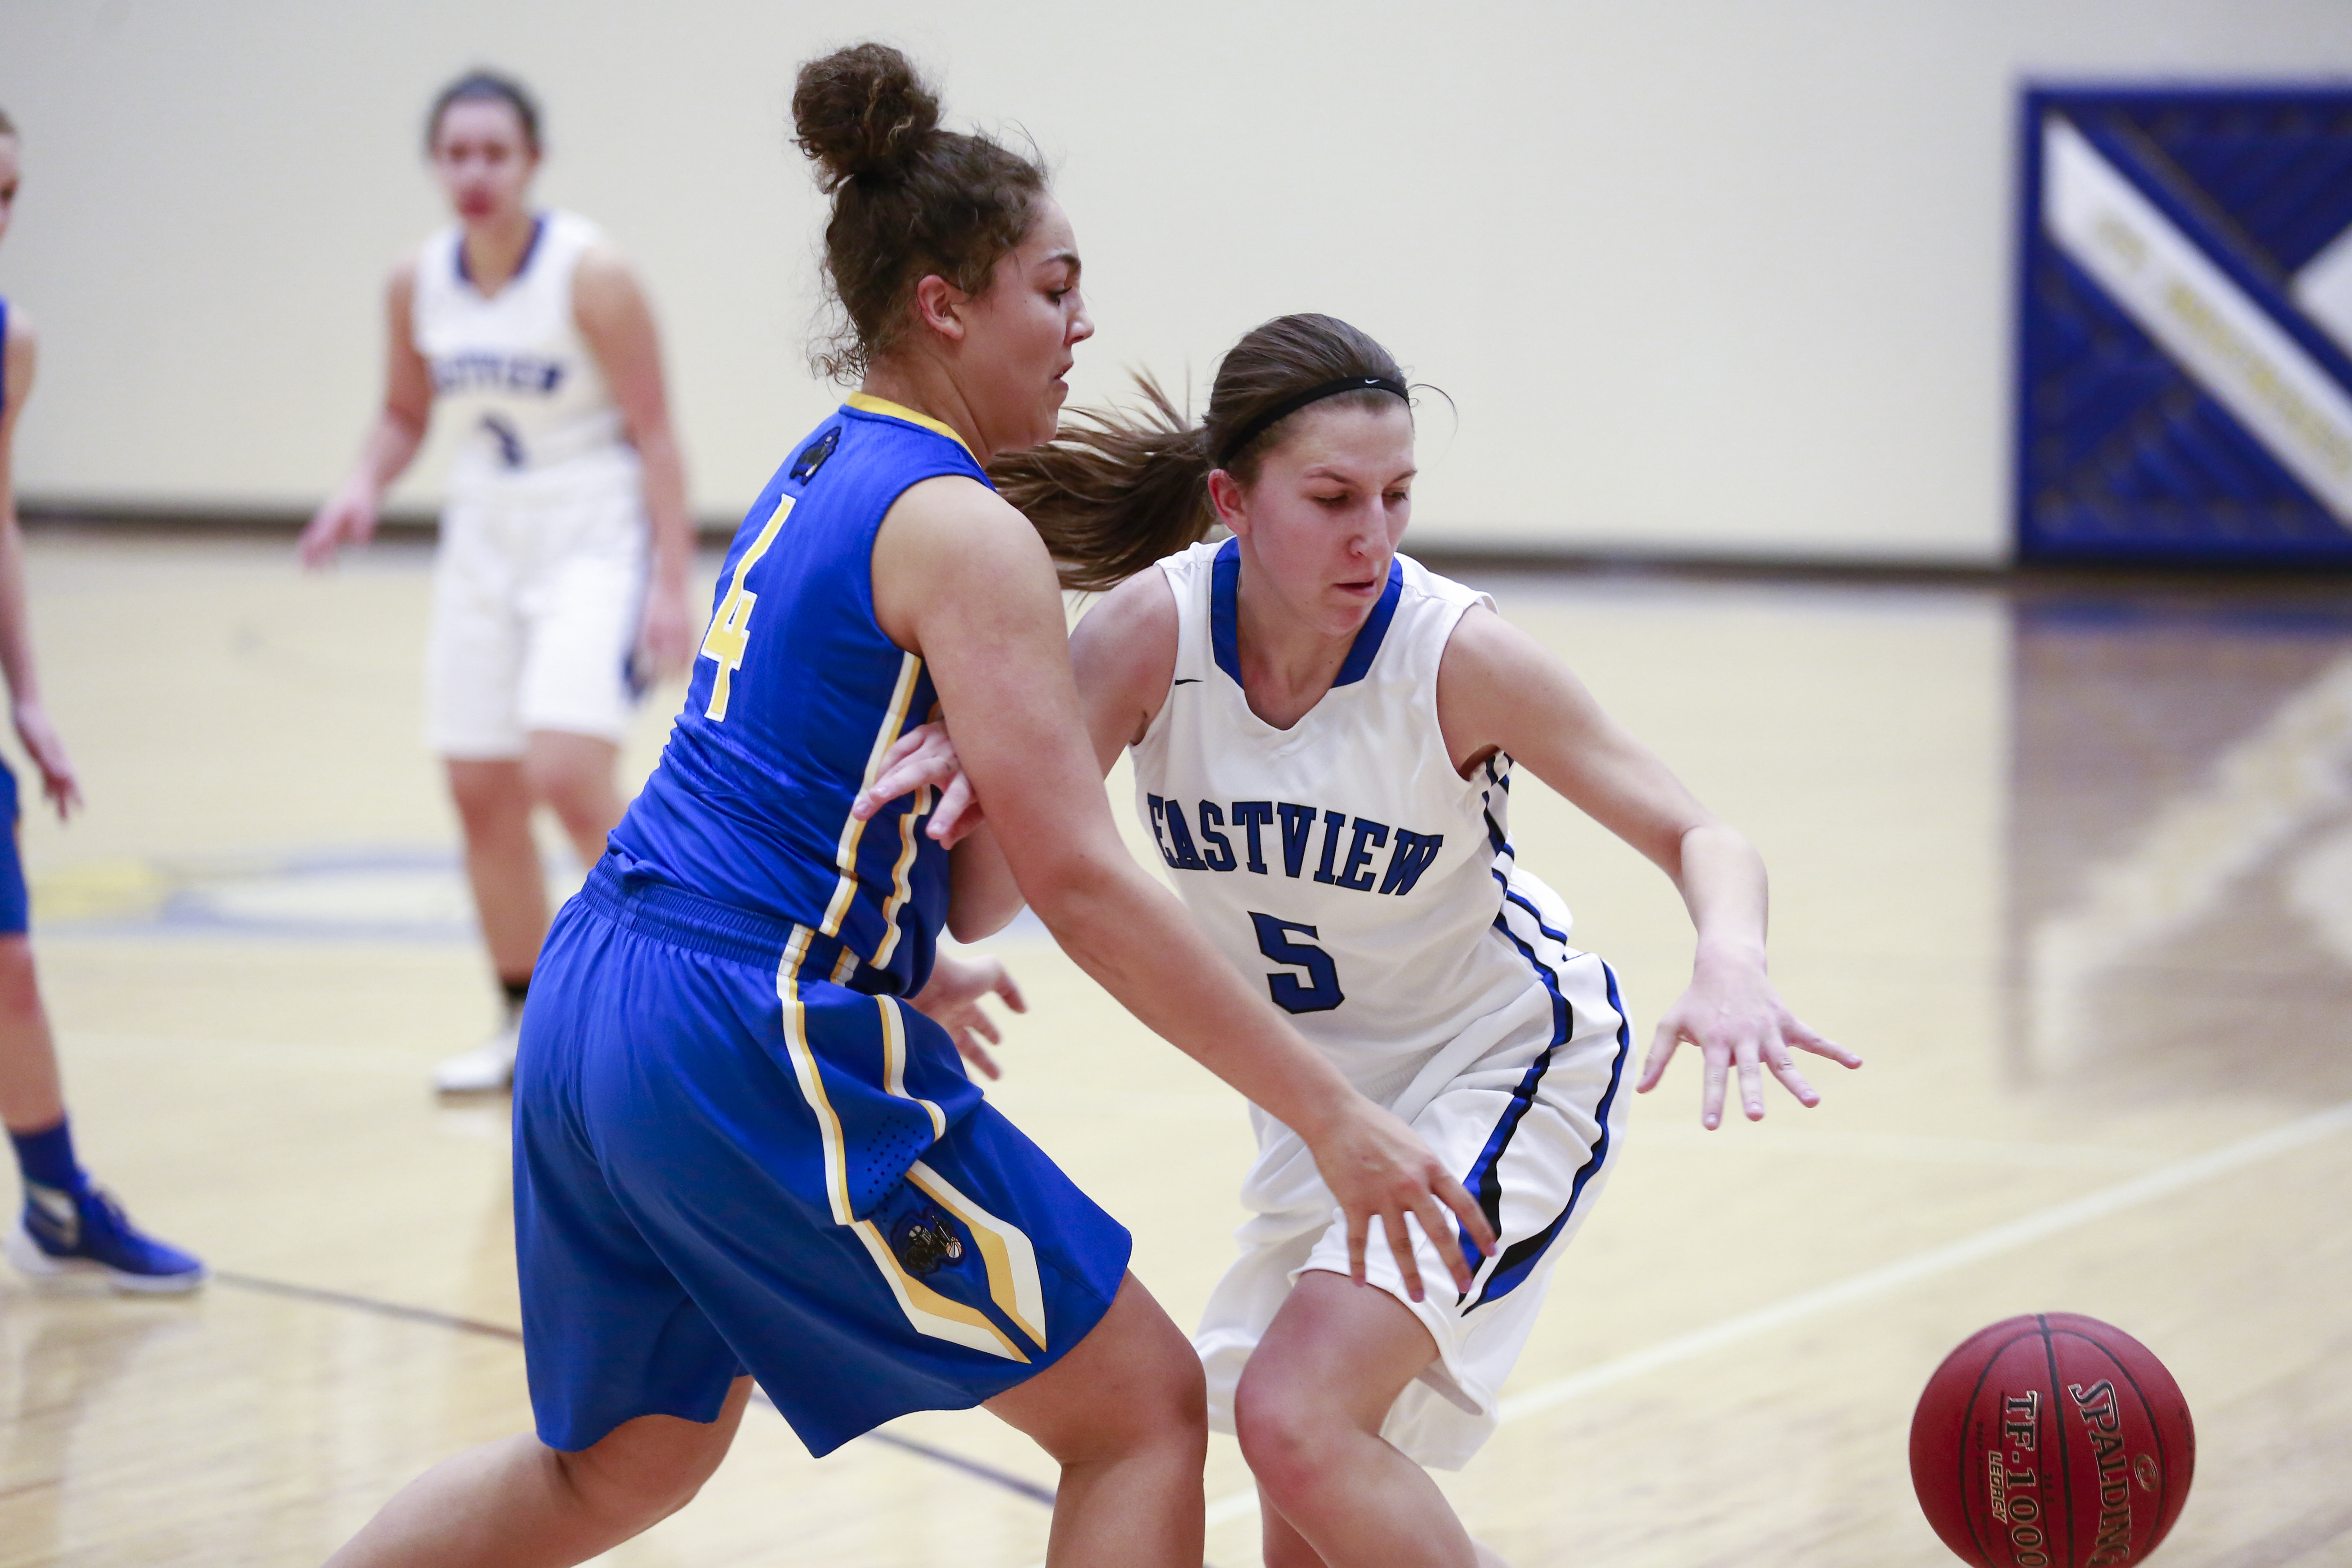 Eastview Lightning's Allie Pickrain (5) dribbles the ball in St Michael-Albertville's defensive zone. Allie scored 26 points including 2 late game free-throws to help Eastview secure the victory 77-66 away in St. Michael. Photo by Chris Juhn